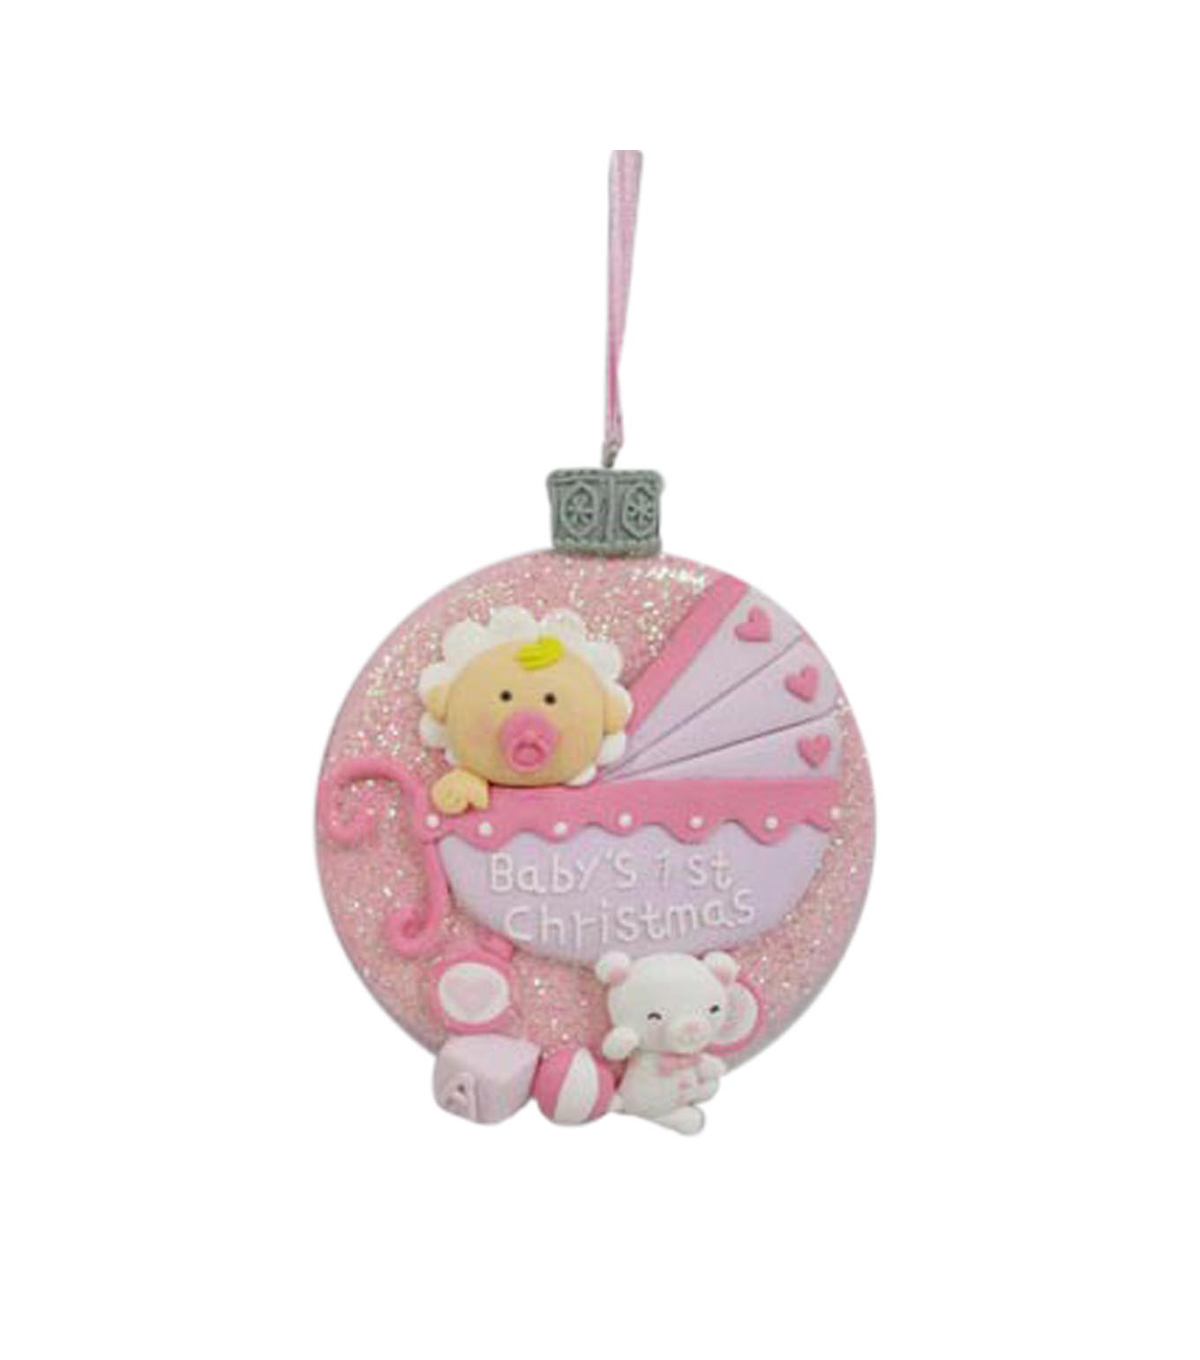 Maker's Holiday Baby Girl's First Christmas Ornament